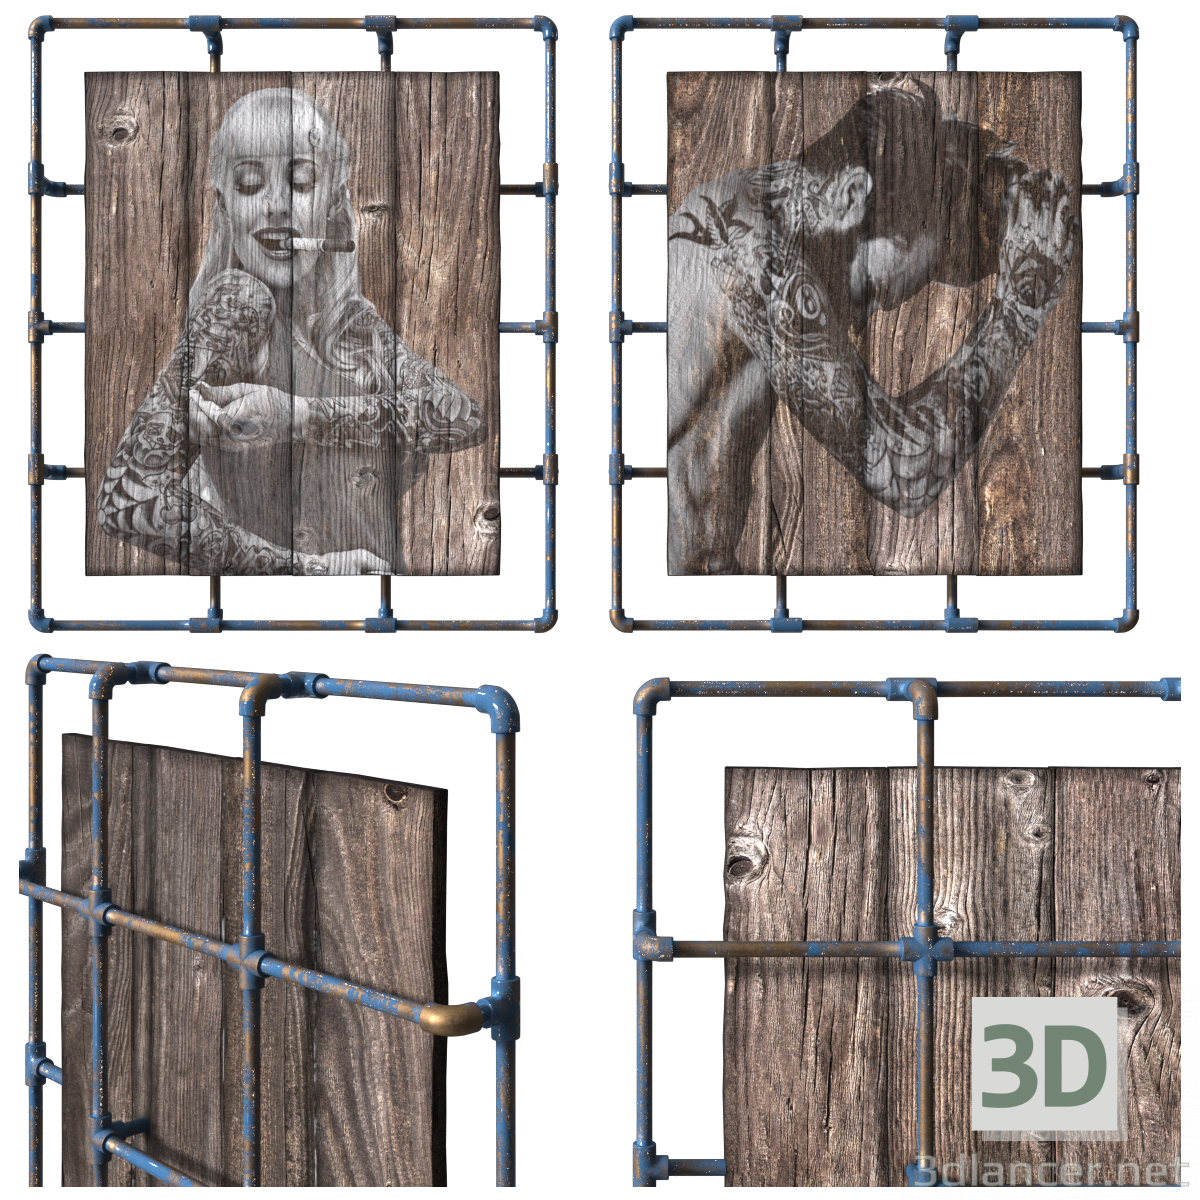 3d Painting on natural wooden boards. The loft-style. model buy - render